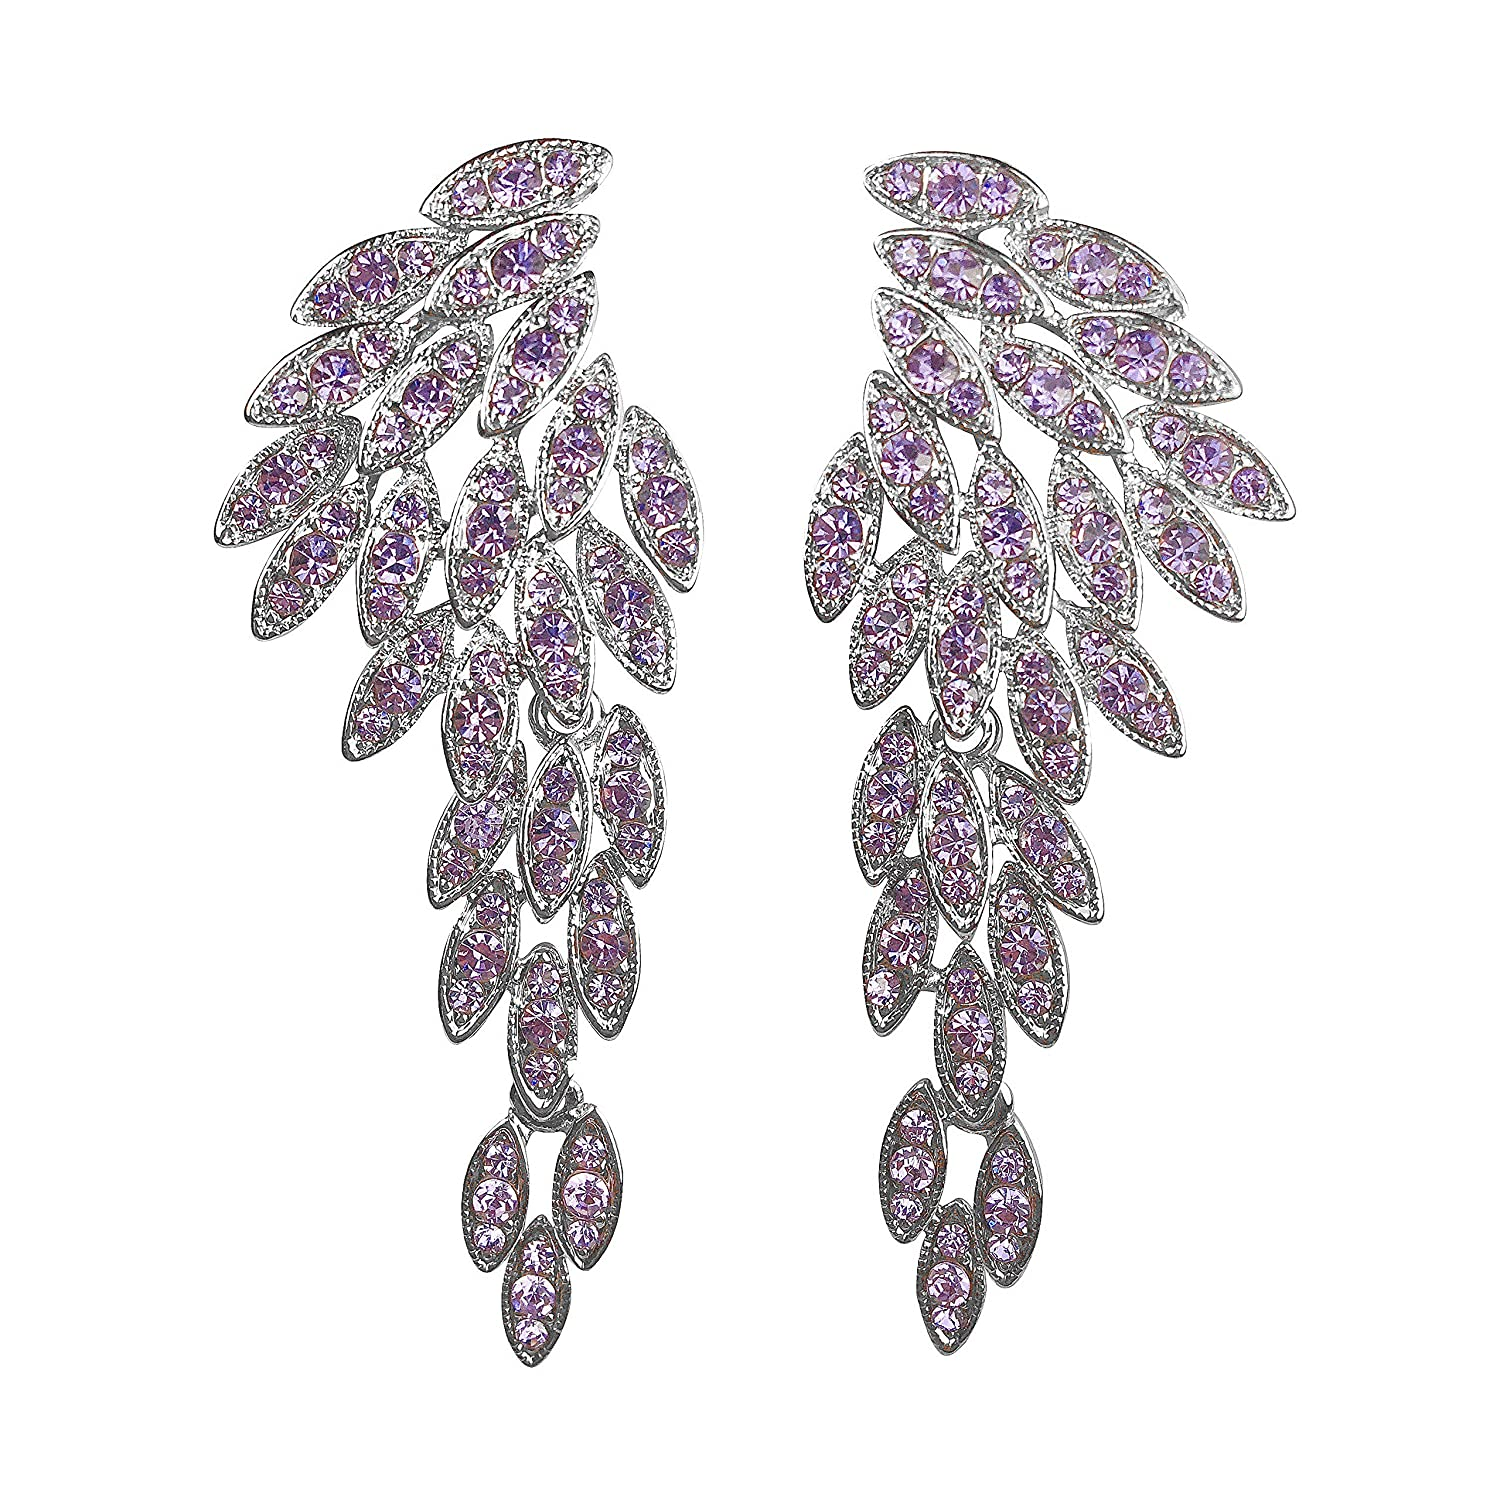 24219f8e2 UNIQUE DESIGN - Looking for party earrings? Studded with dazzling  rhinestone crystals in gold, rose gold, silver, black and amethyst for an  eye-catching ...